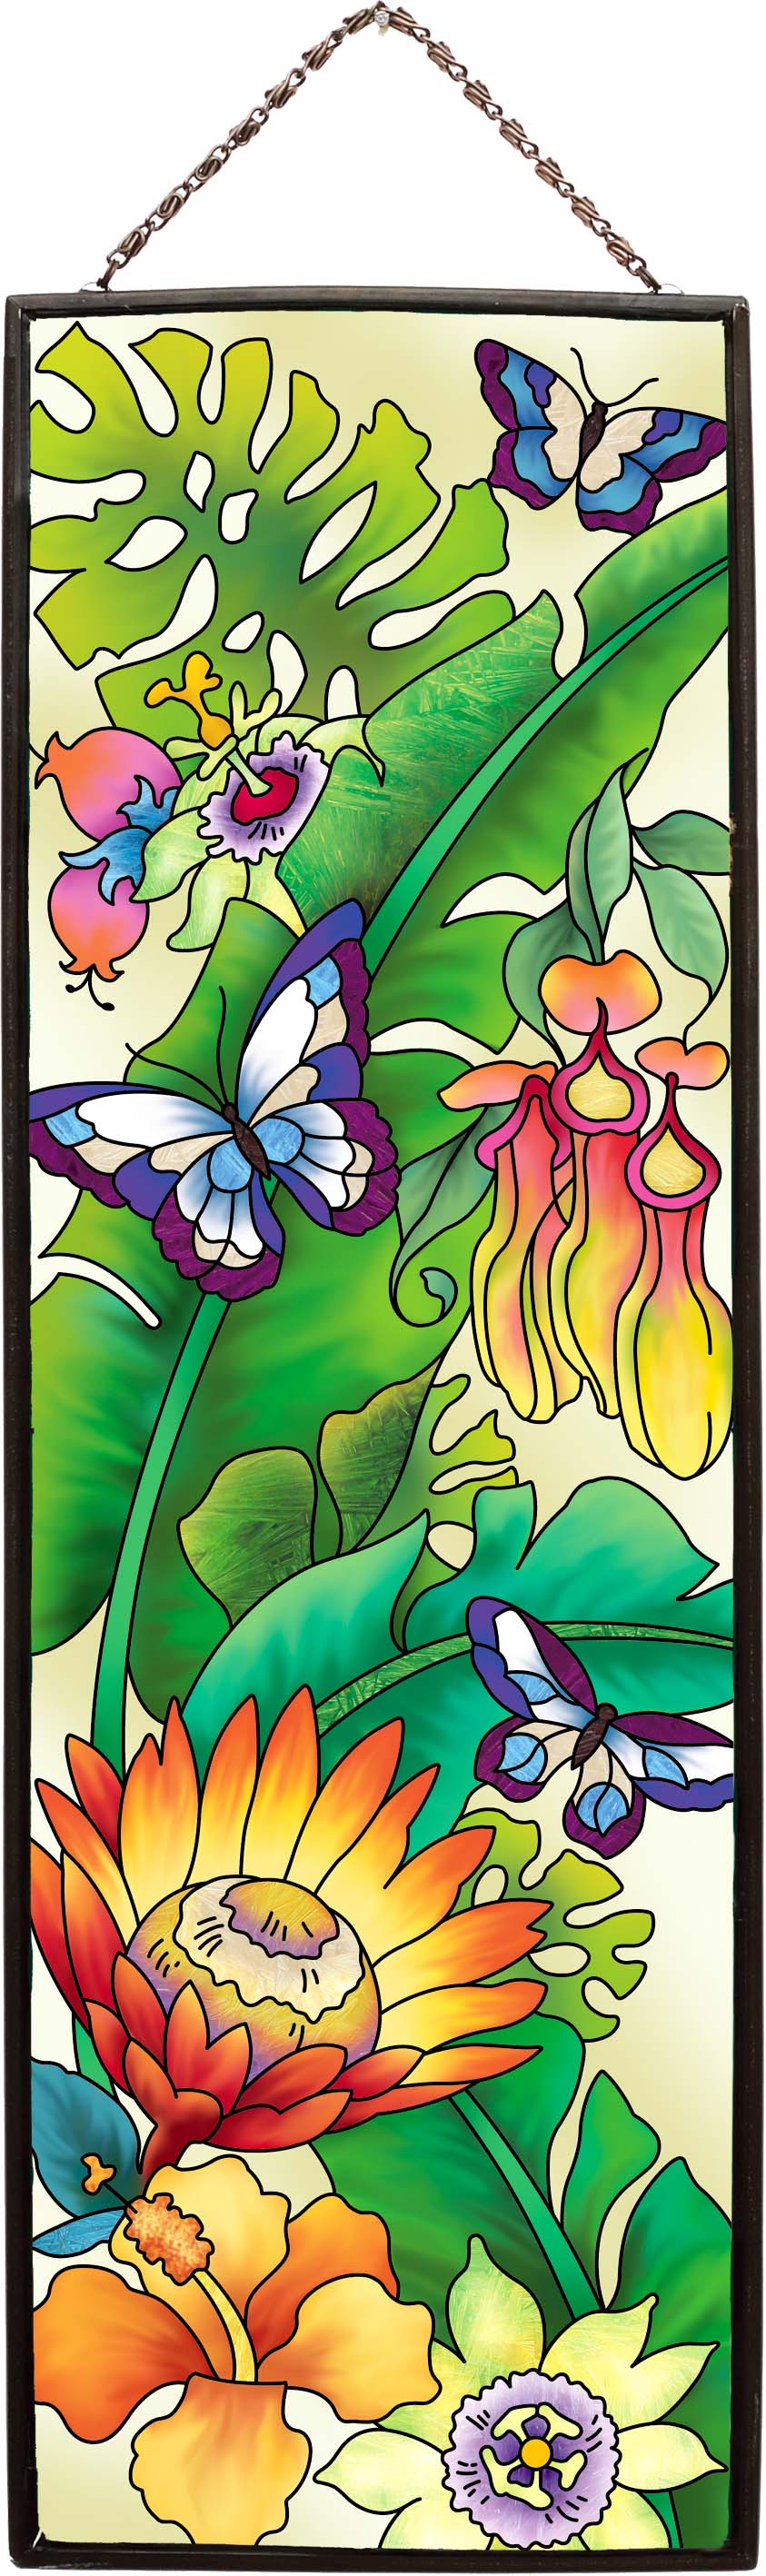 Art Panel-AP241-Rainforest Floral - Rainforest Floral